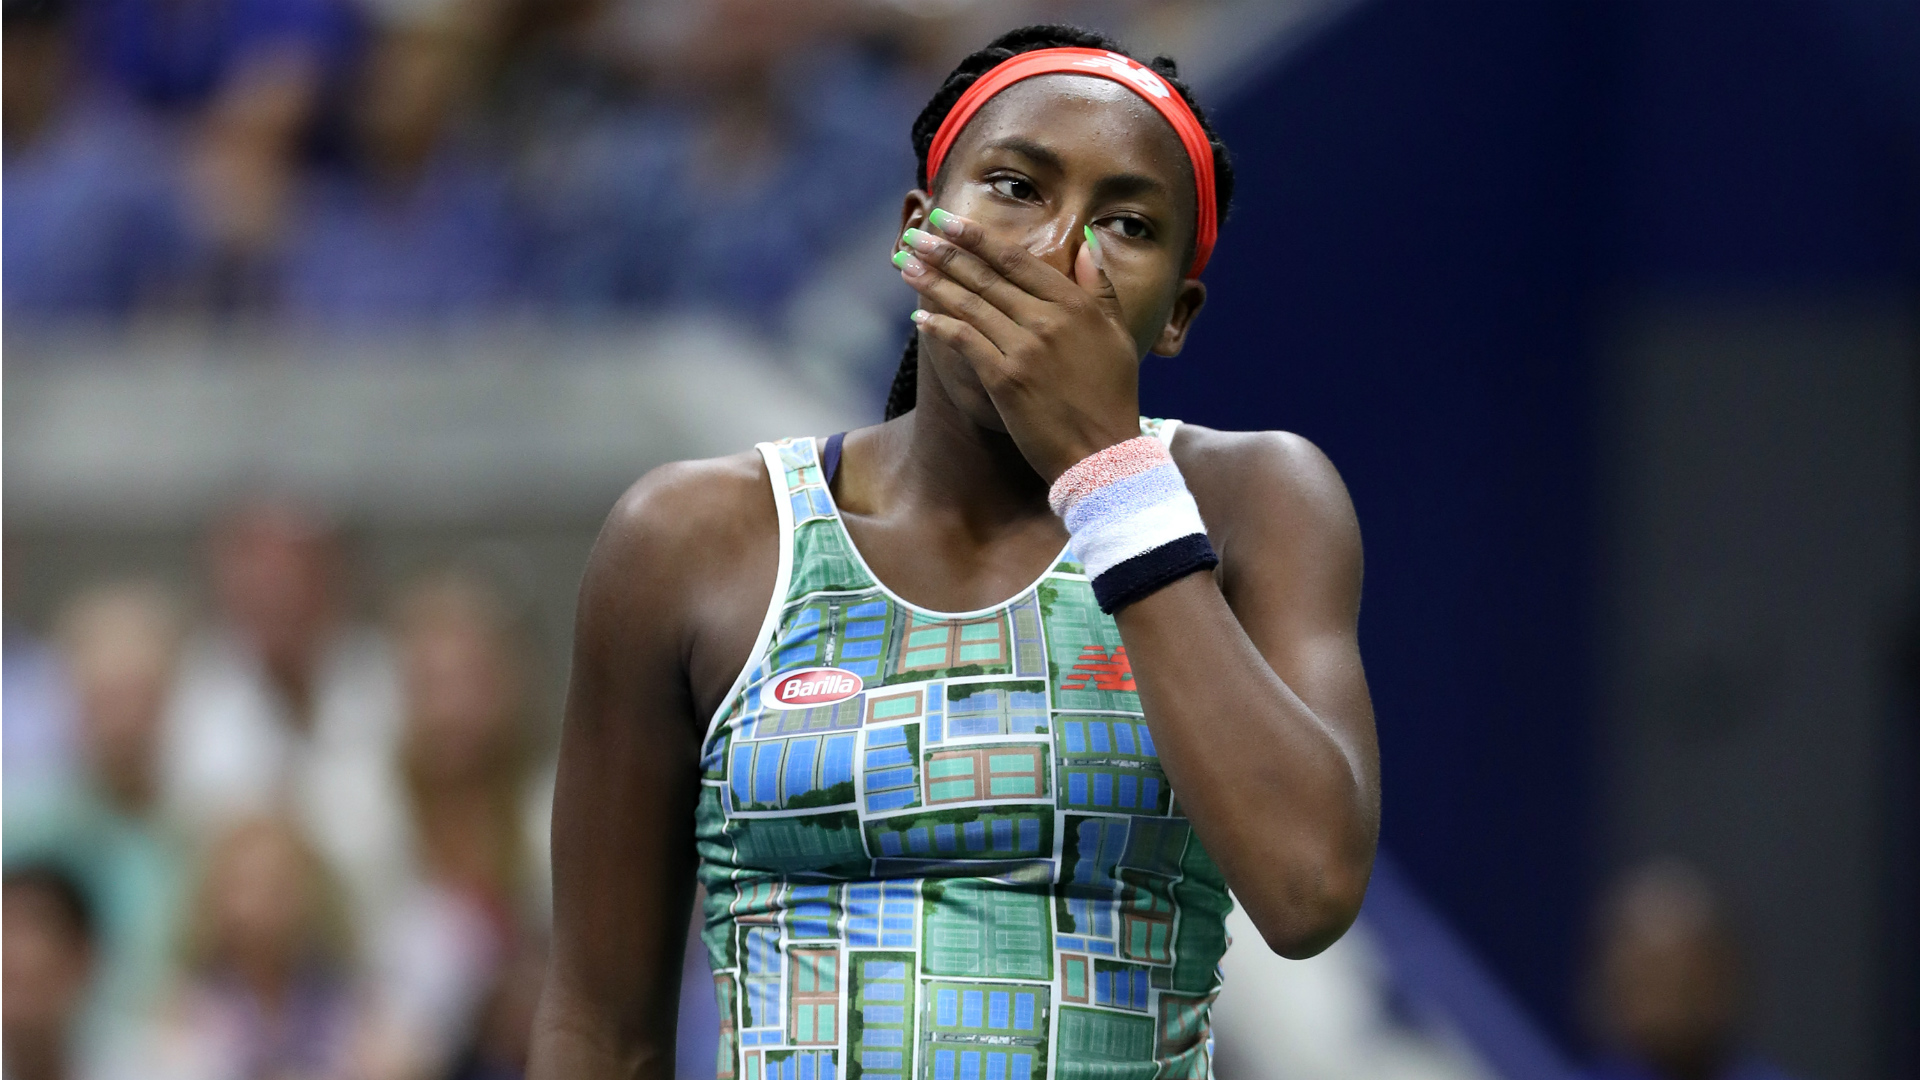 Two weeks before the Australian Open, Coco Gauff, Serena Williams and Bianca Andreescu will all be playing at the Auckland Open.